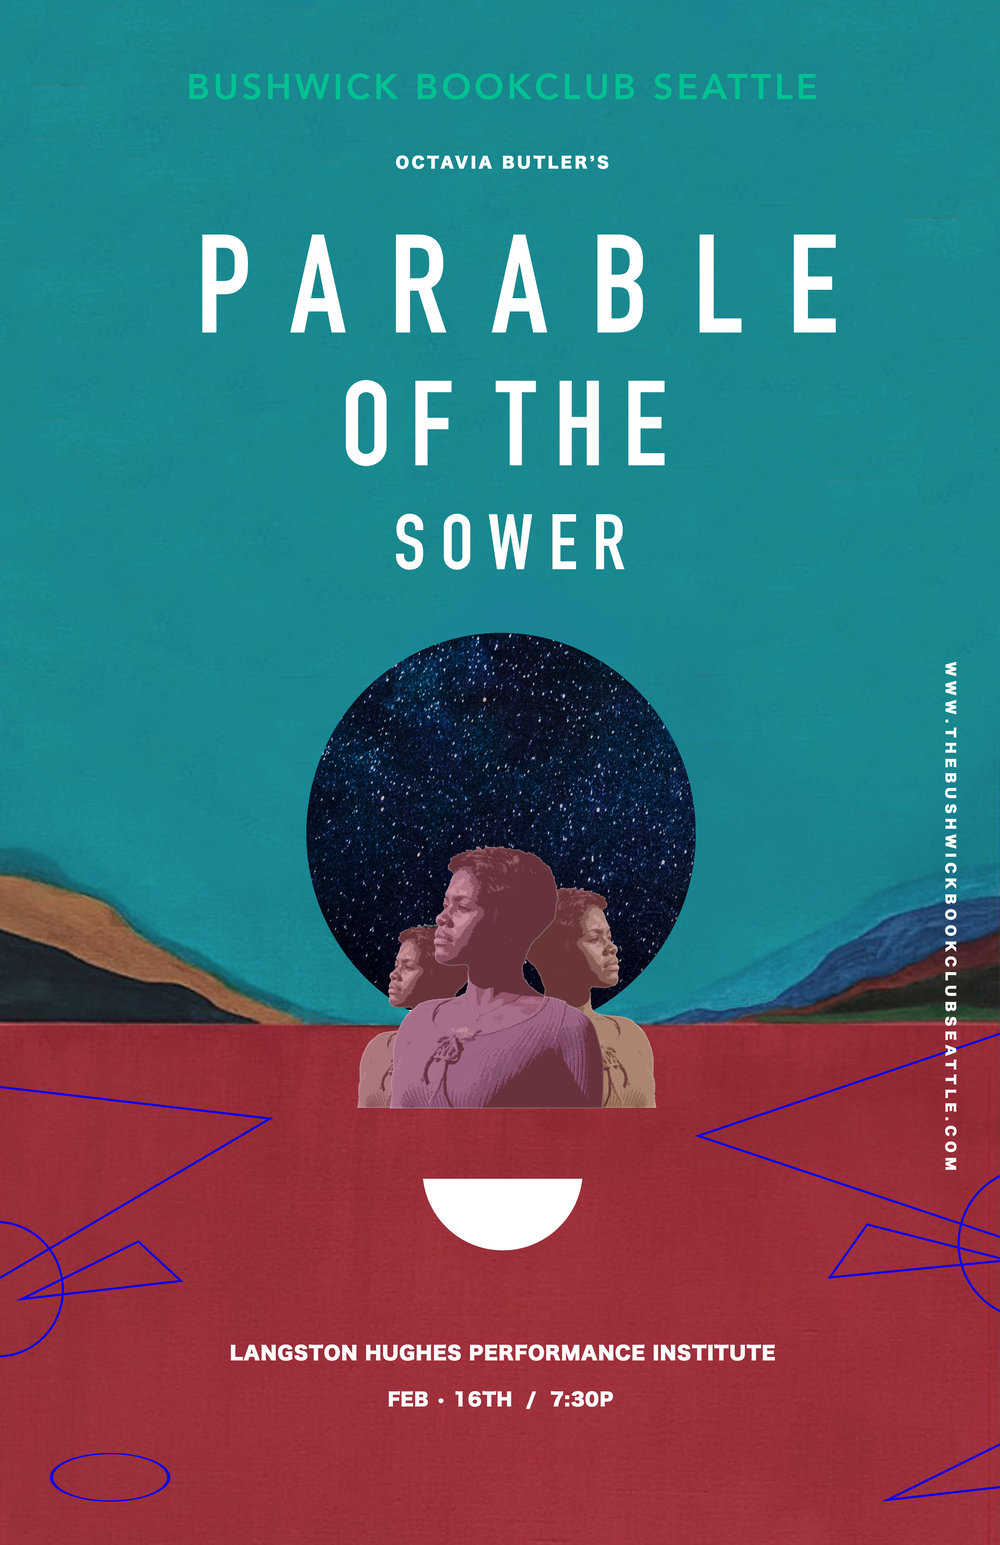 Parable of The Sower 2.jpg